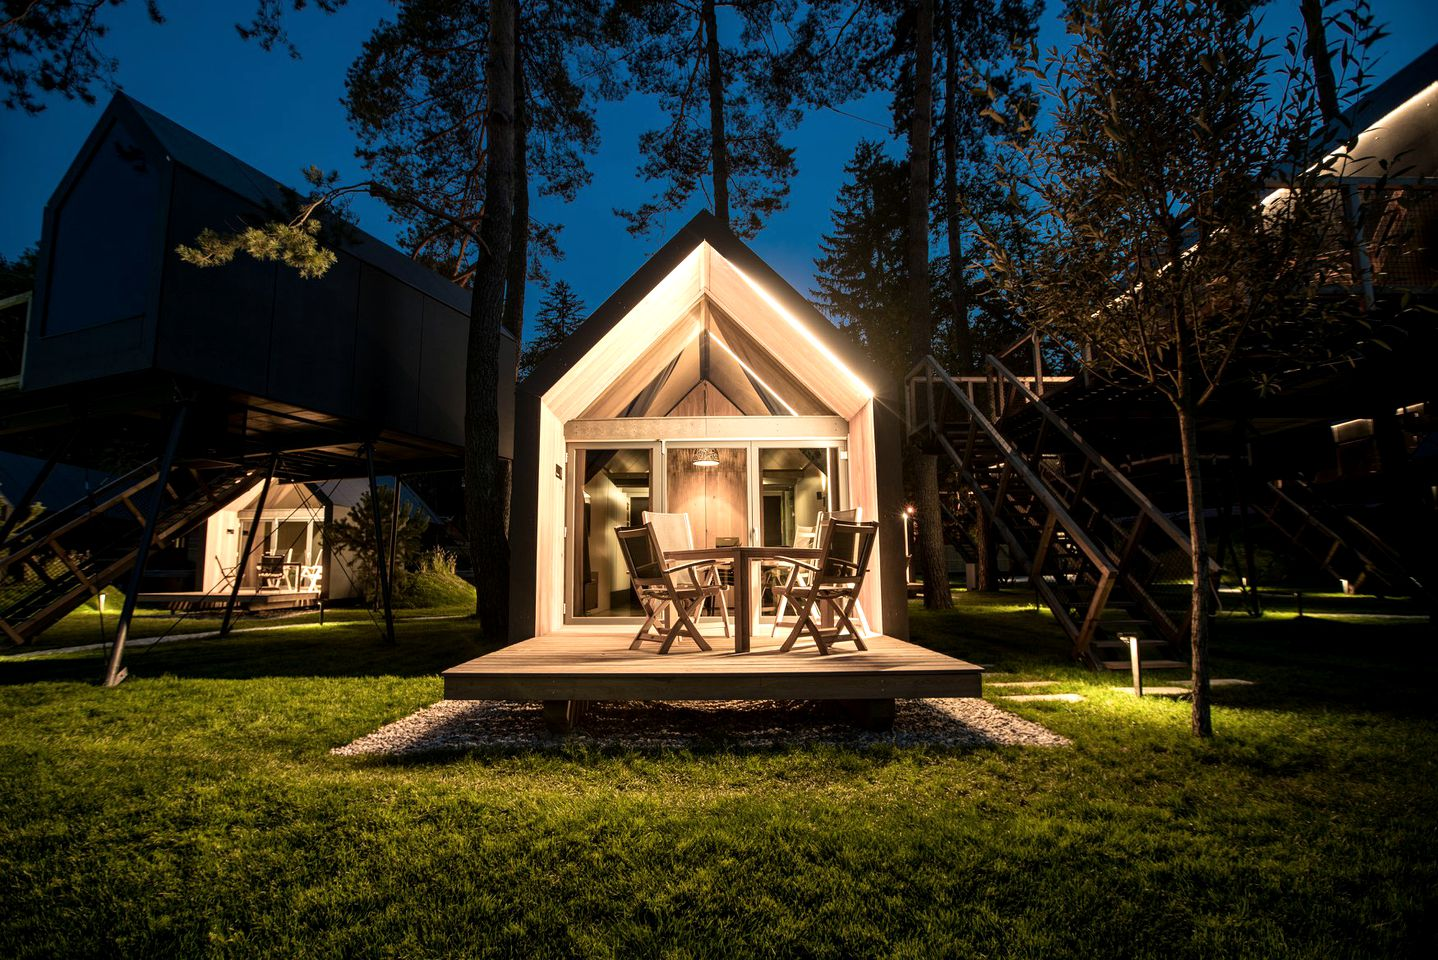 Cabin rental for glamping in Slovenia